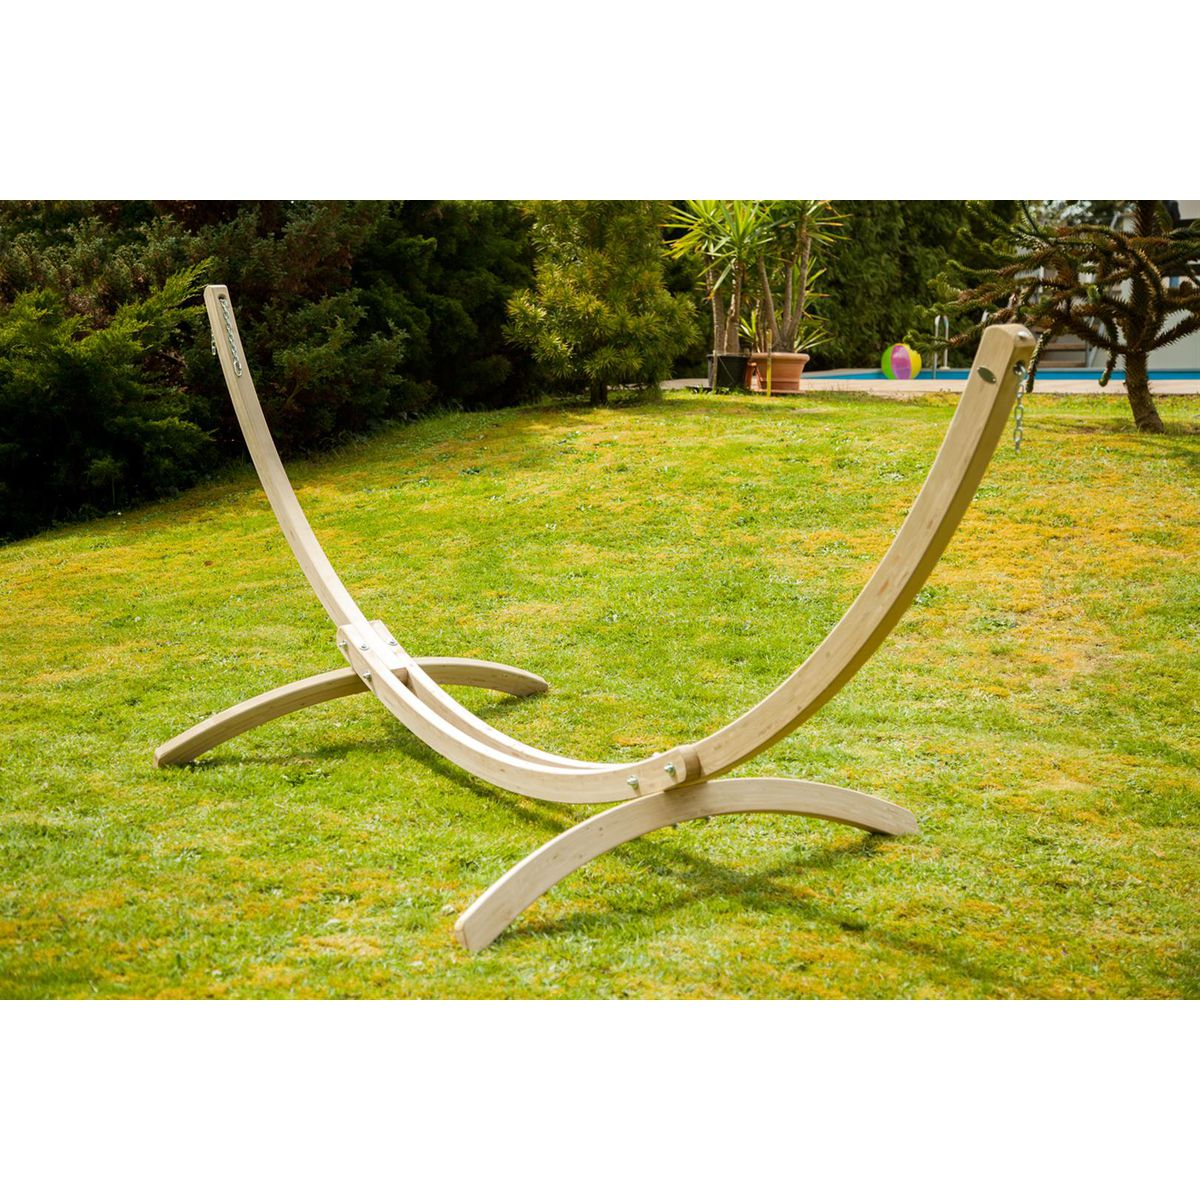 Amazonas Olymp Wooden Hammock Stand - Ruby's Garden Boutique